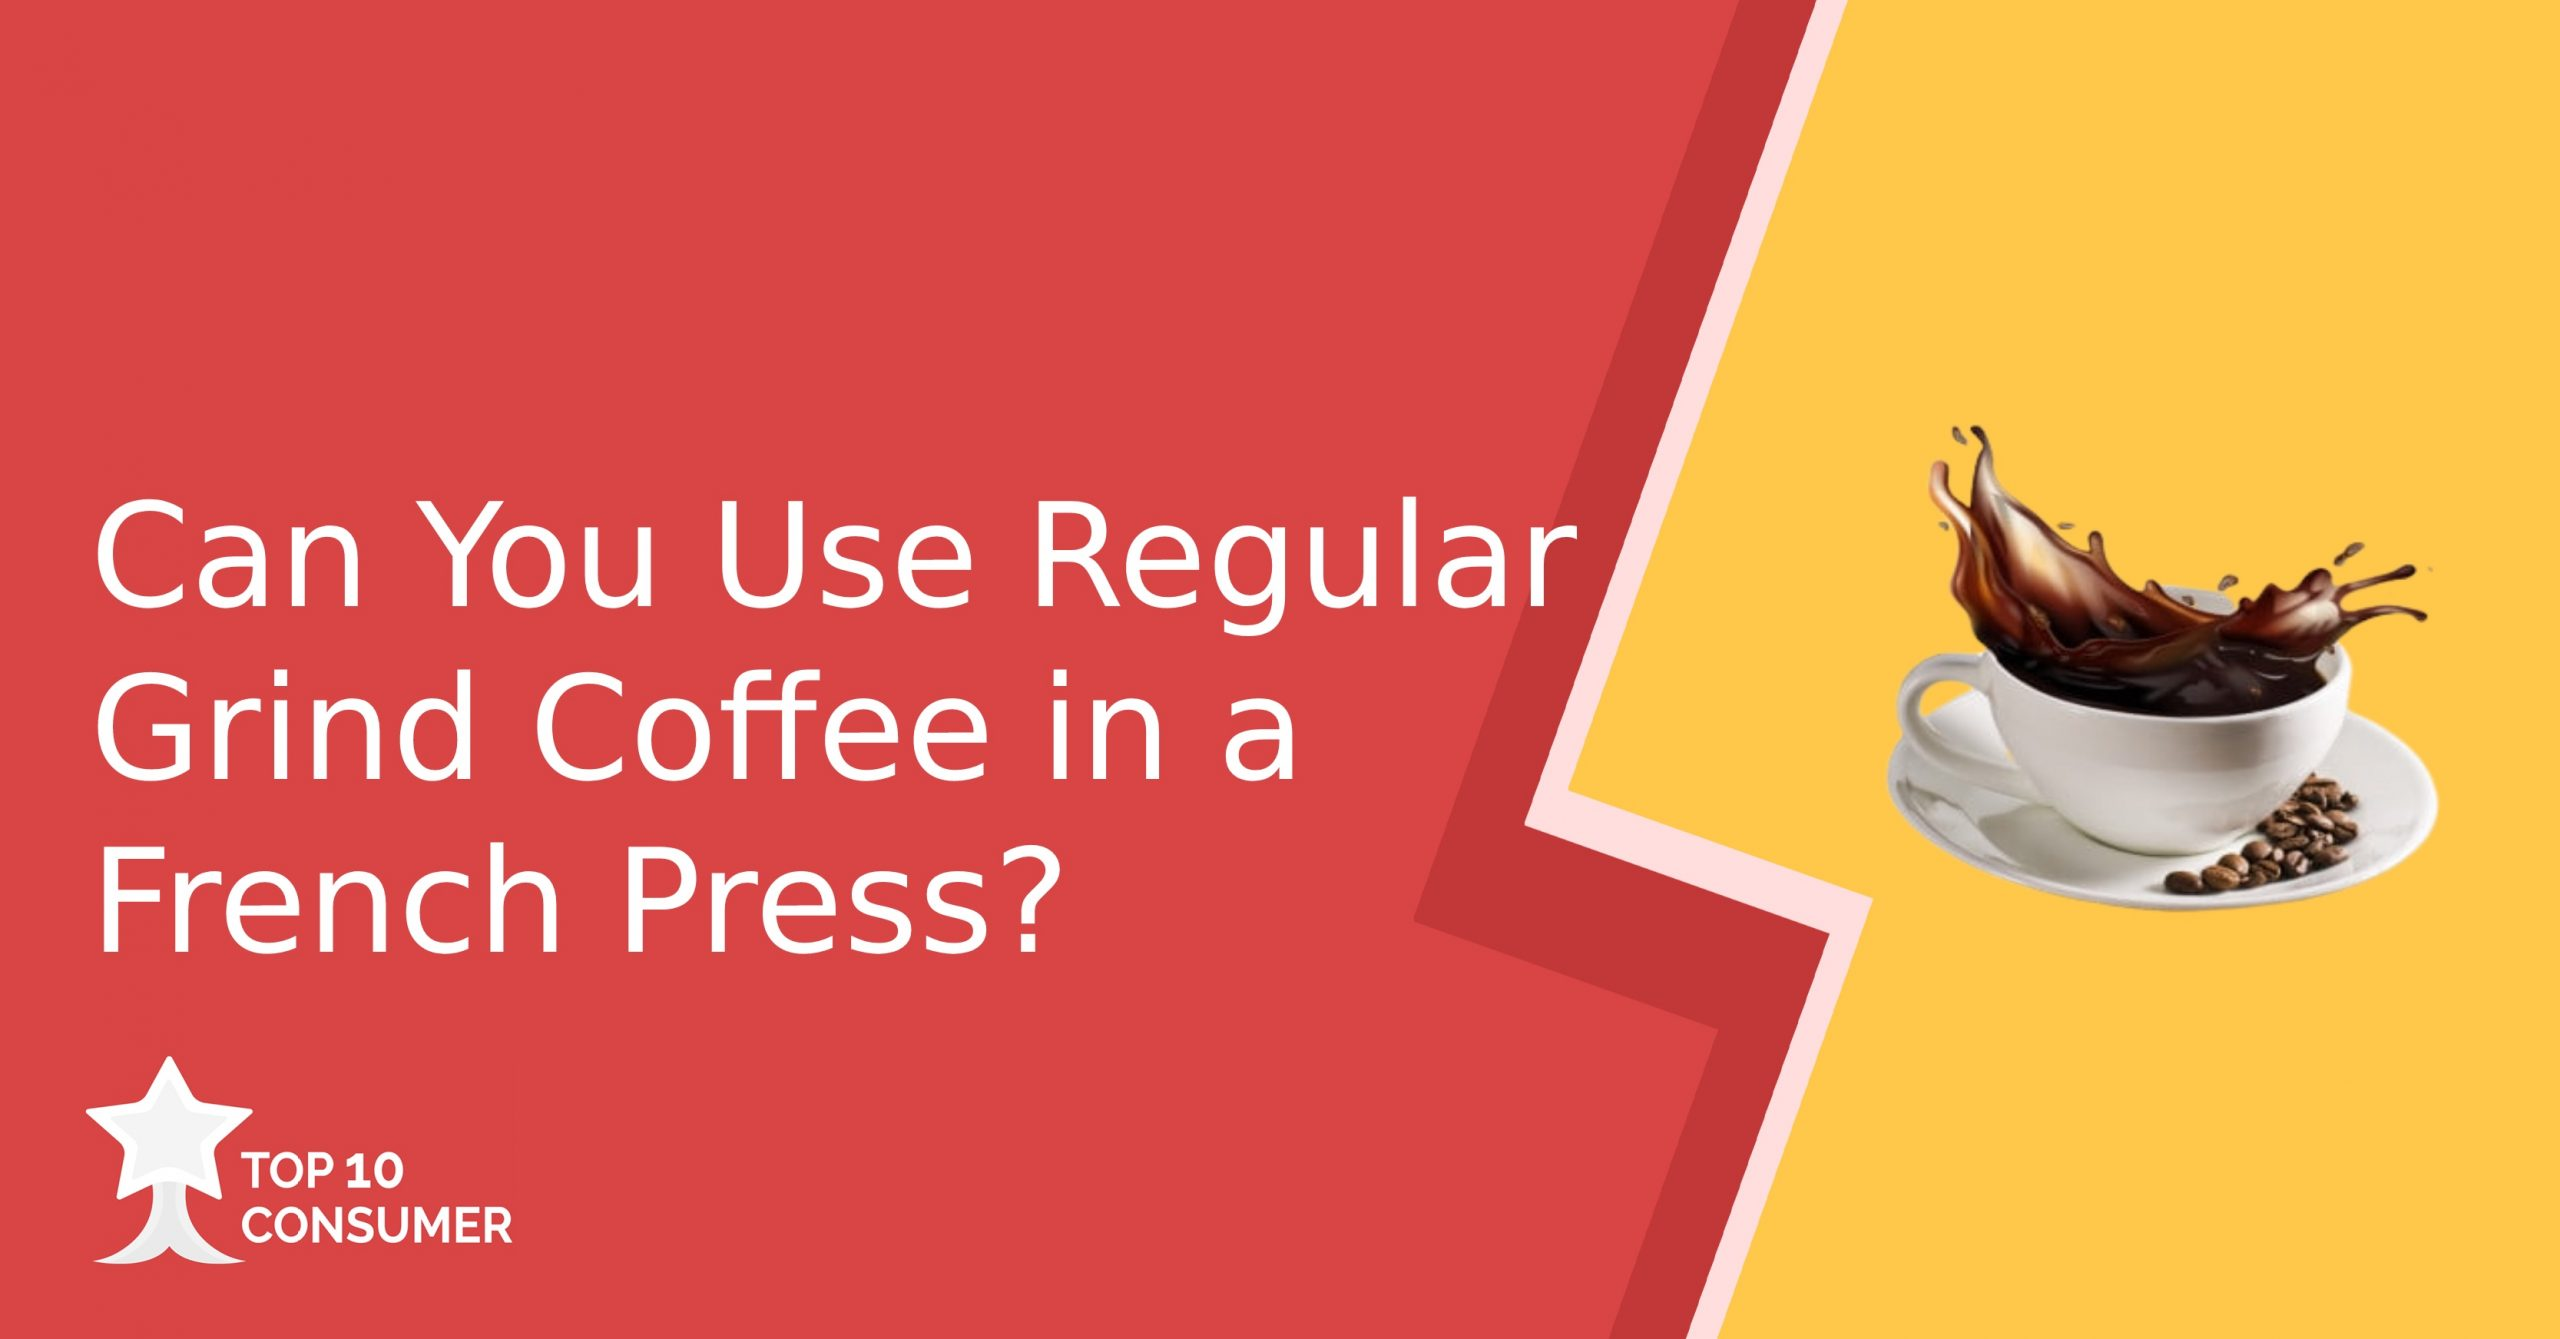 Can You Use Regular Grind Coffee in a French Press